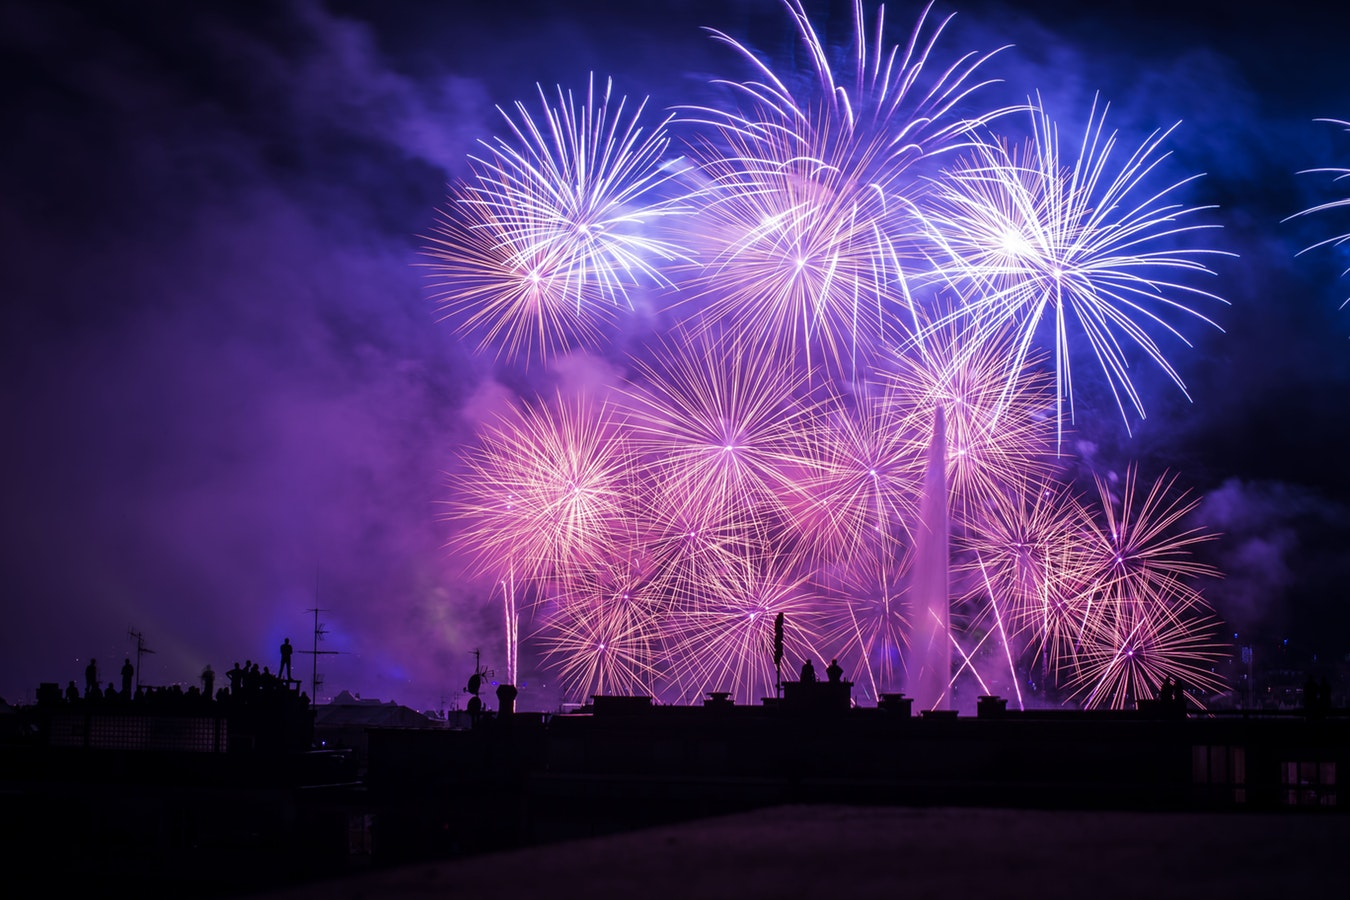 Our Advice to Keep Pets Calm During 'Fireworks Season'